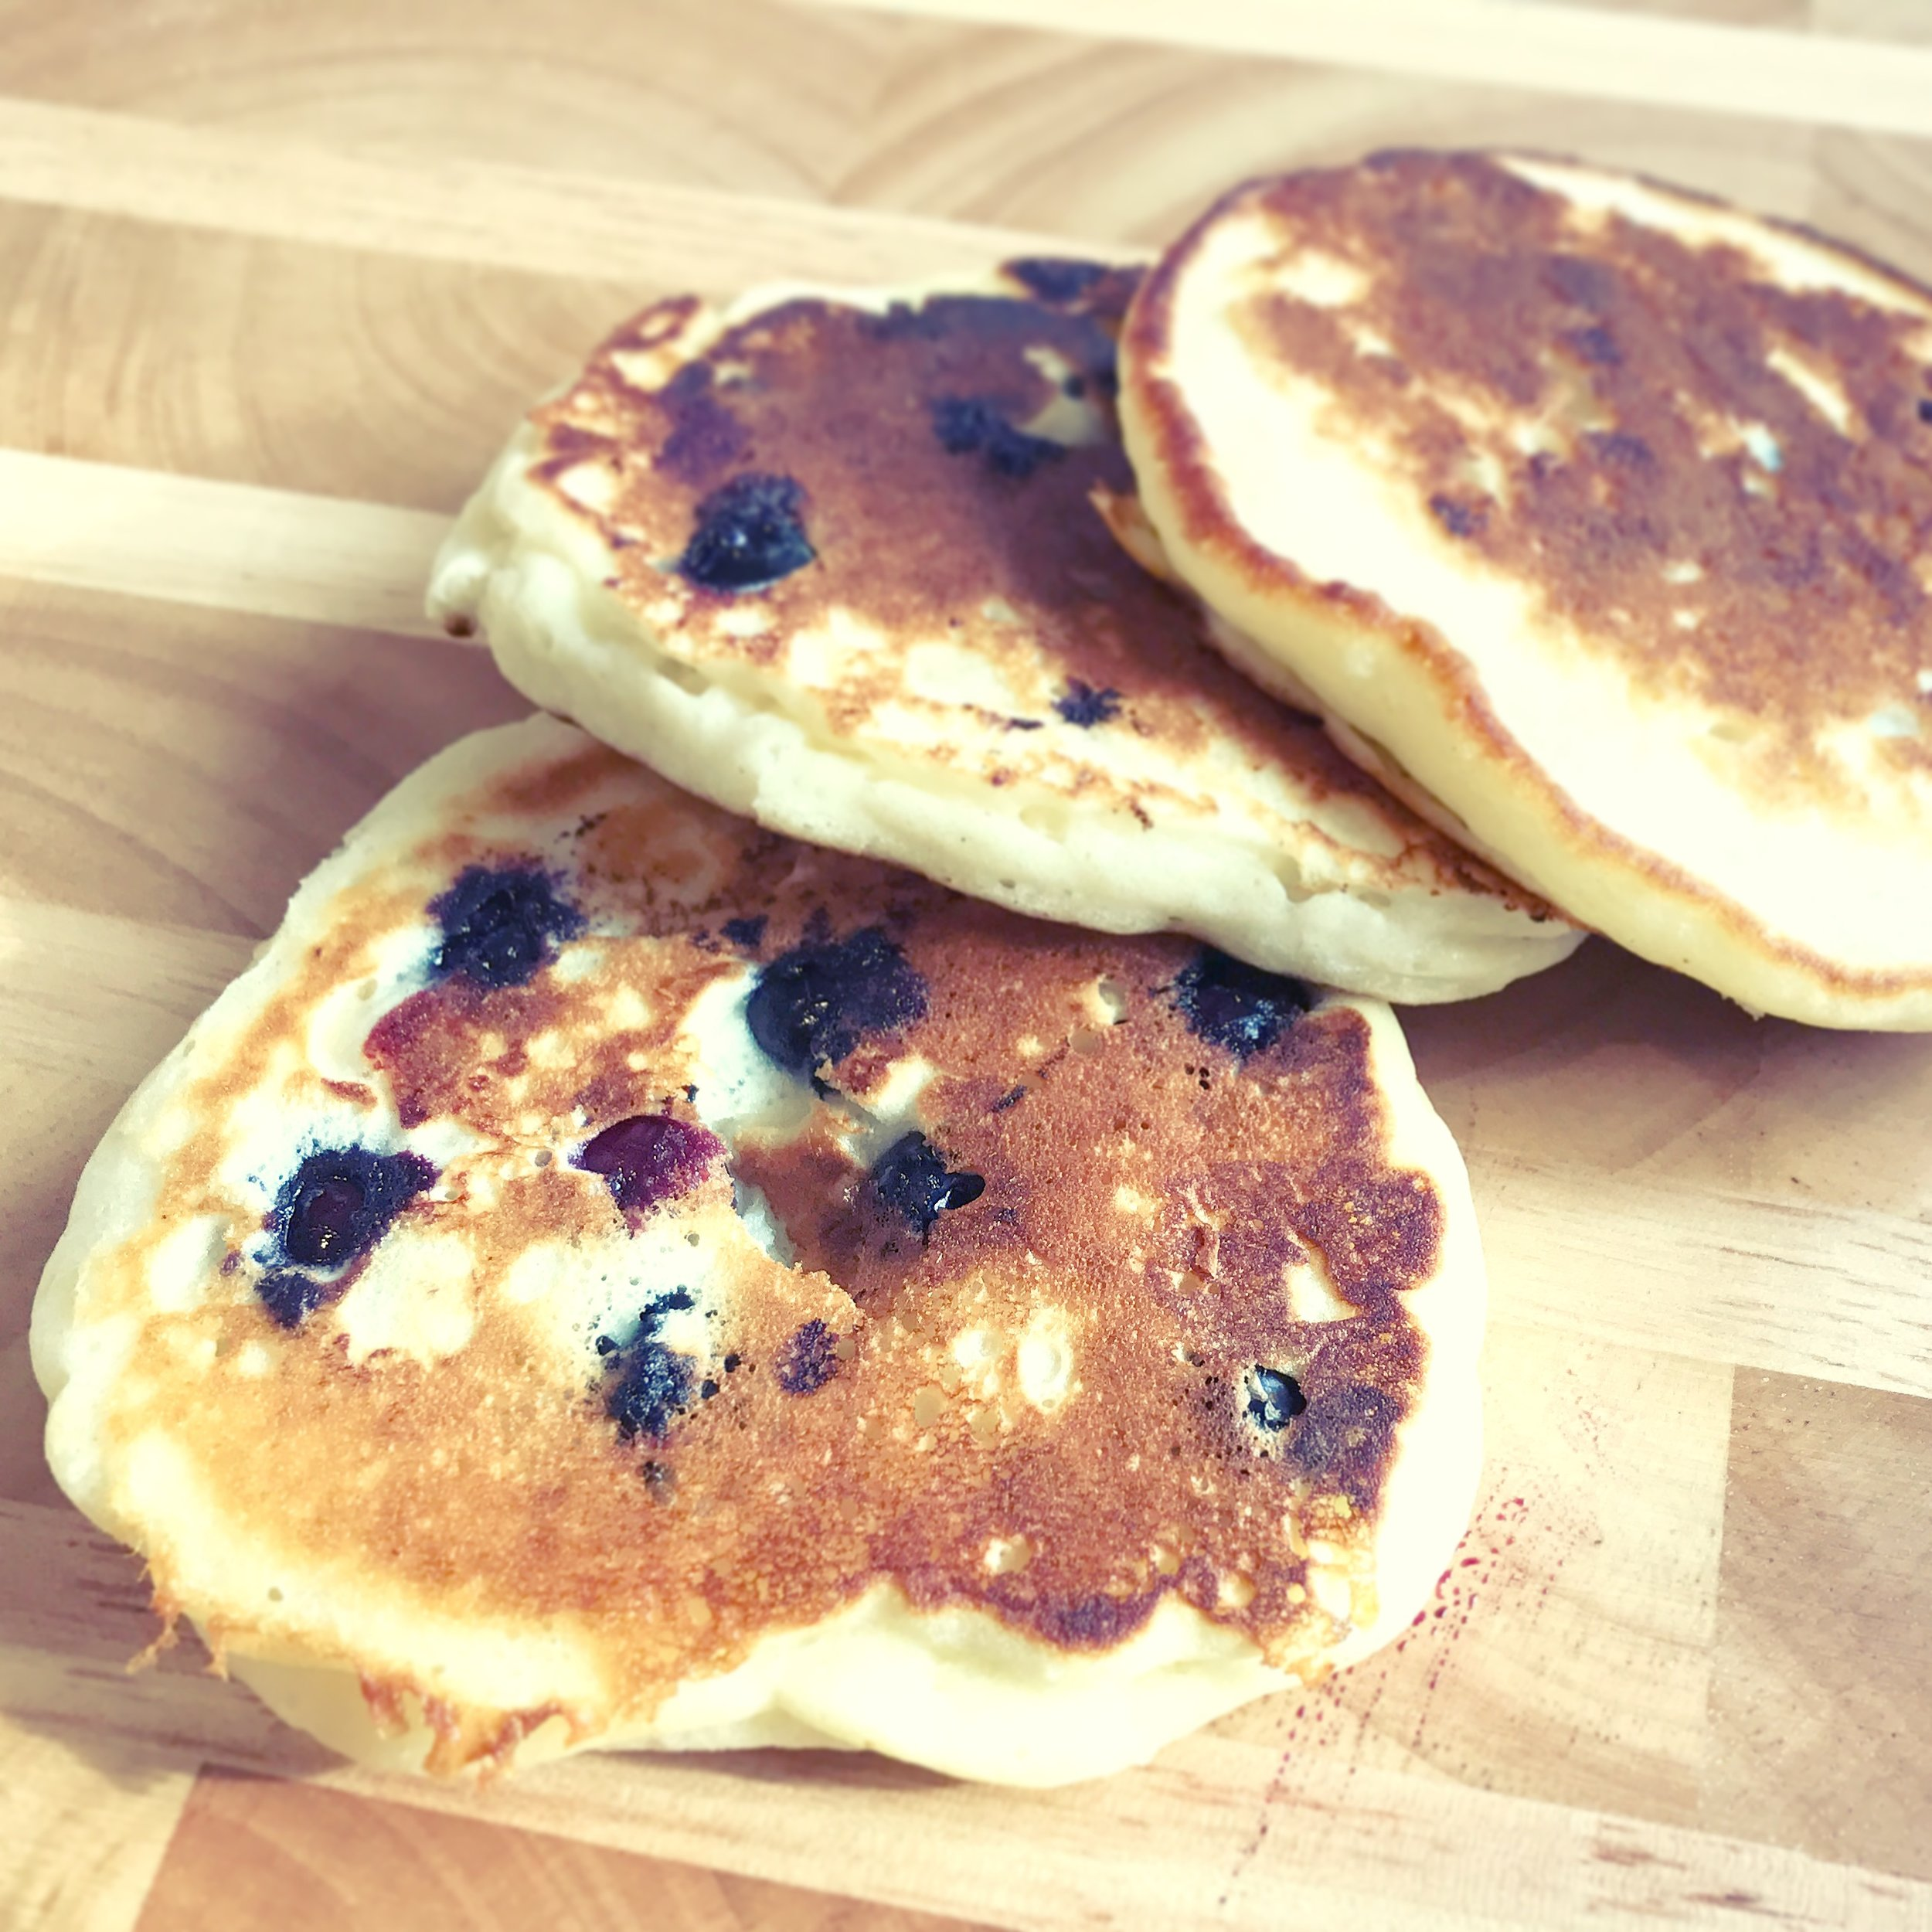 Heck, no-one here is going to judge you for using instant pancake mix, but for the mornings (or nights)when you want to revel in your inner domestic Goddess, here's a yummy pancake recipe that's almost as easy as instant.